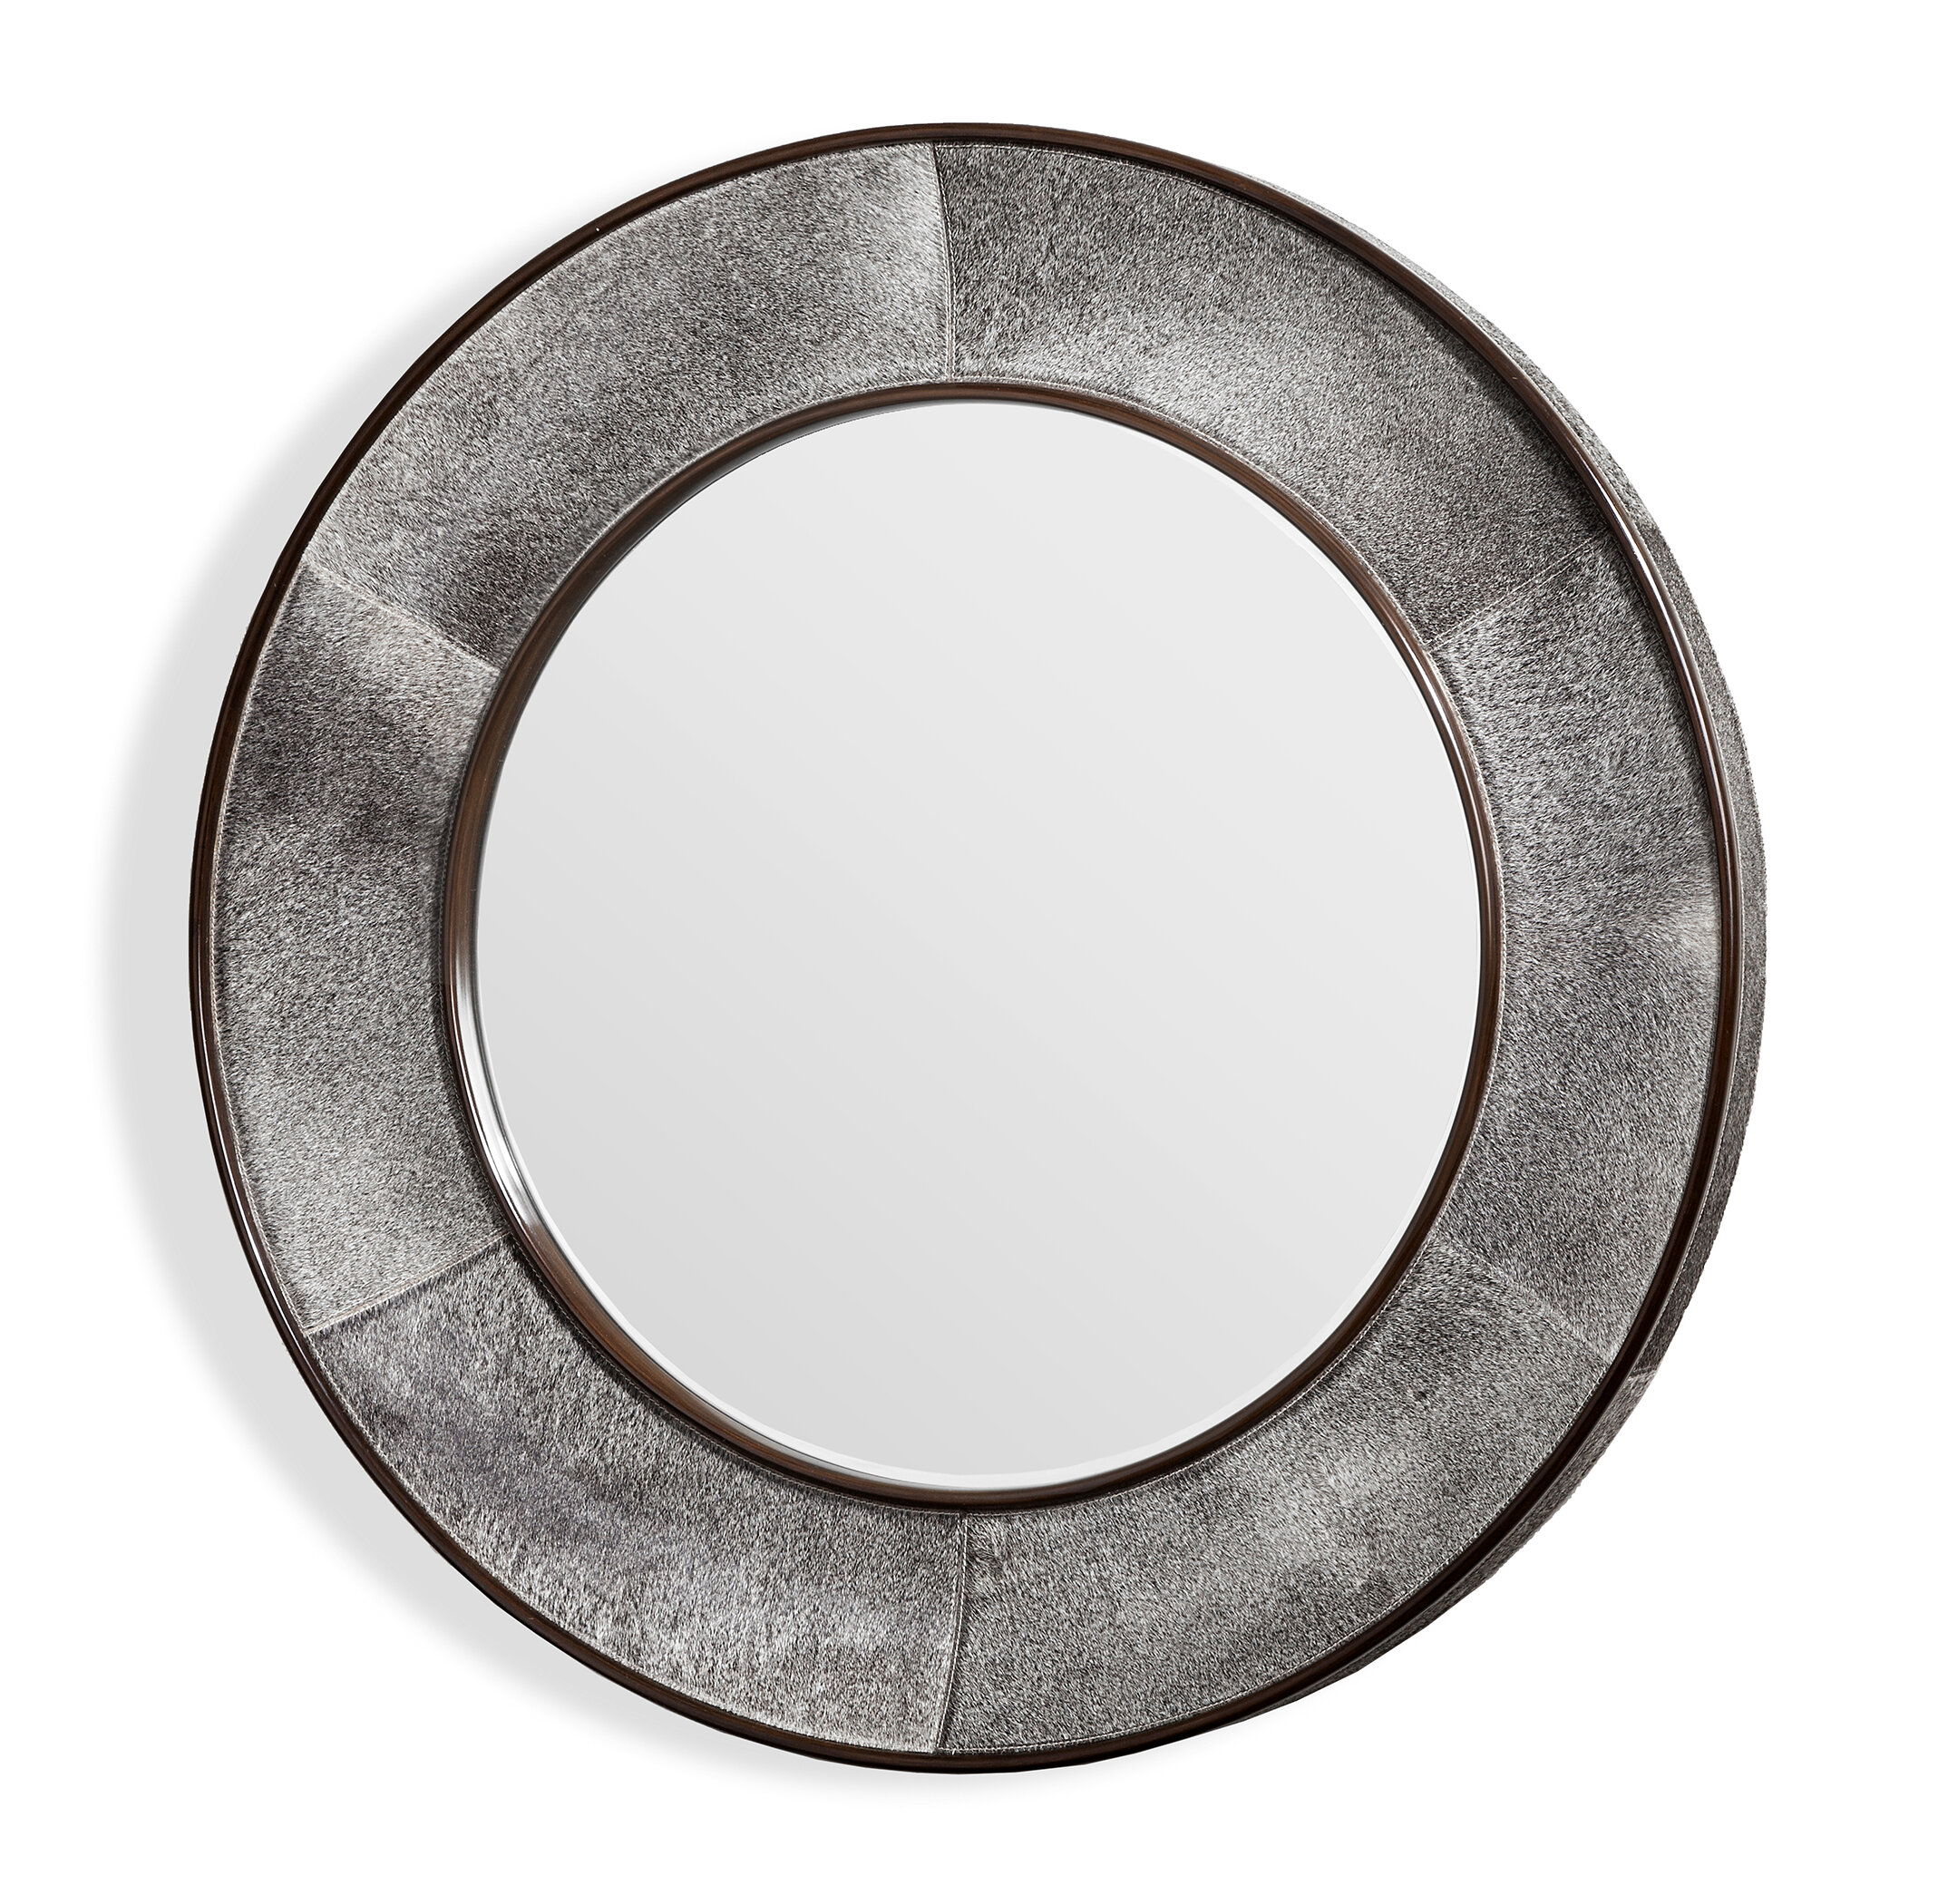 Interlude Irina Modern Accent Mirror Perigold